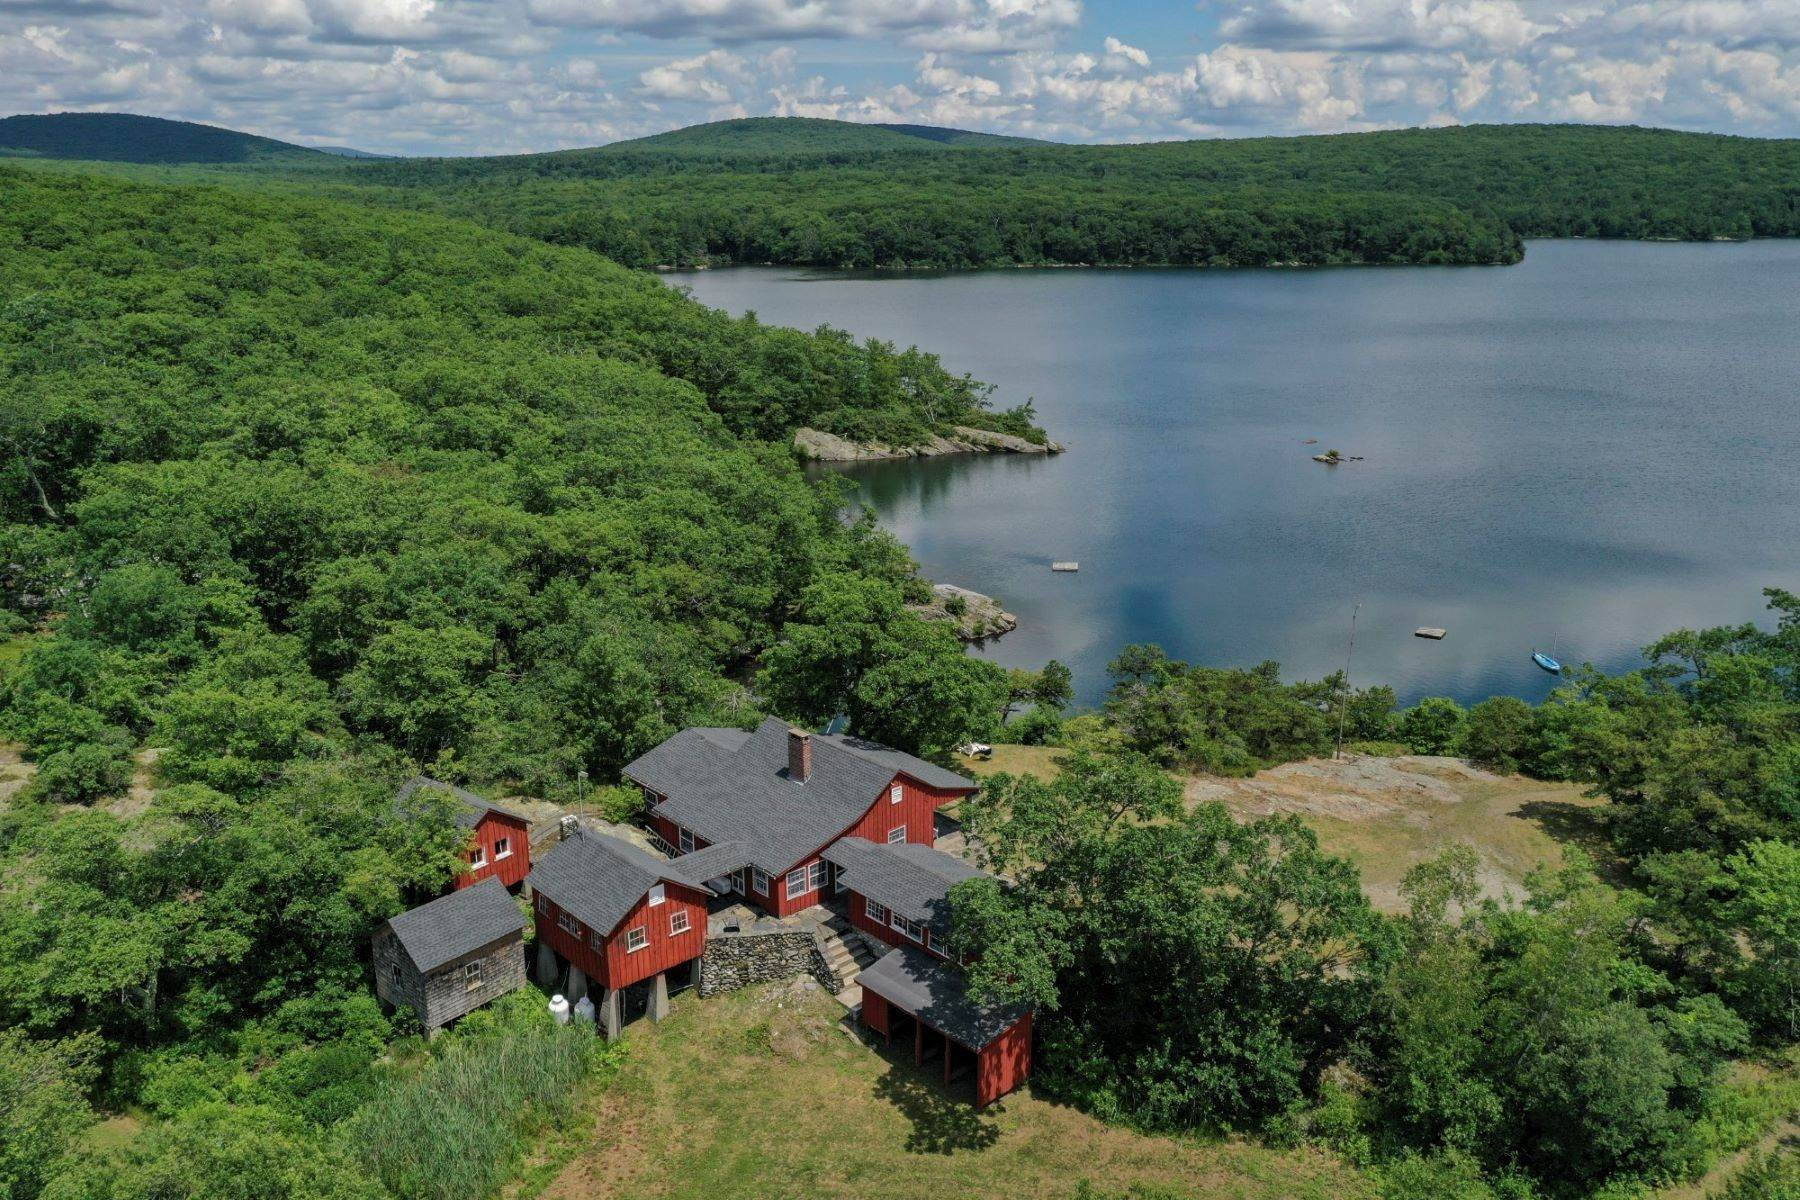 Single Family Homes for Sale at Lakeside Camp 599 Grassy Pond Drive Millerton, New York 12546 United States